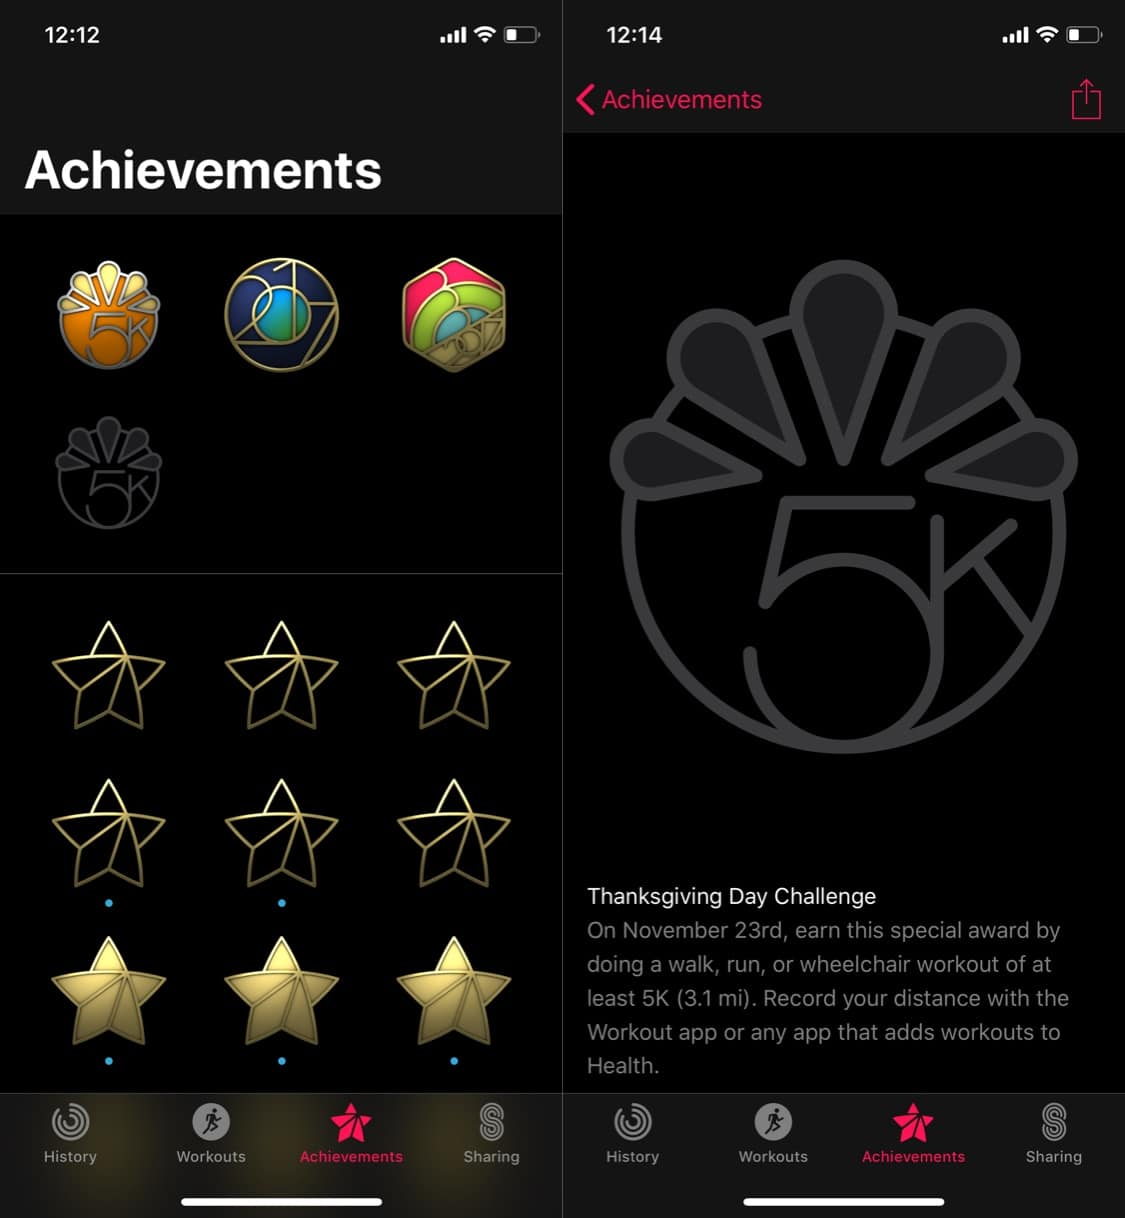 how-to-get-special-achievement-in-thanksgiving-day-for-apple-watch-featured 2017 2